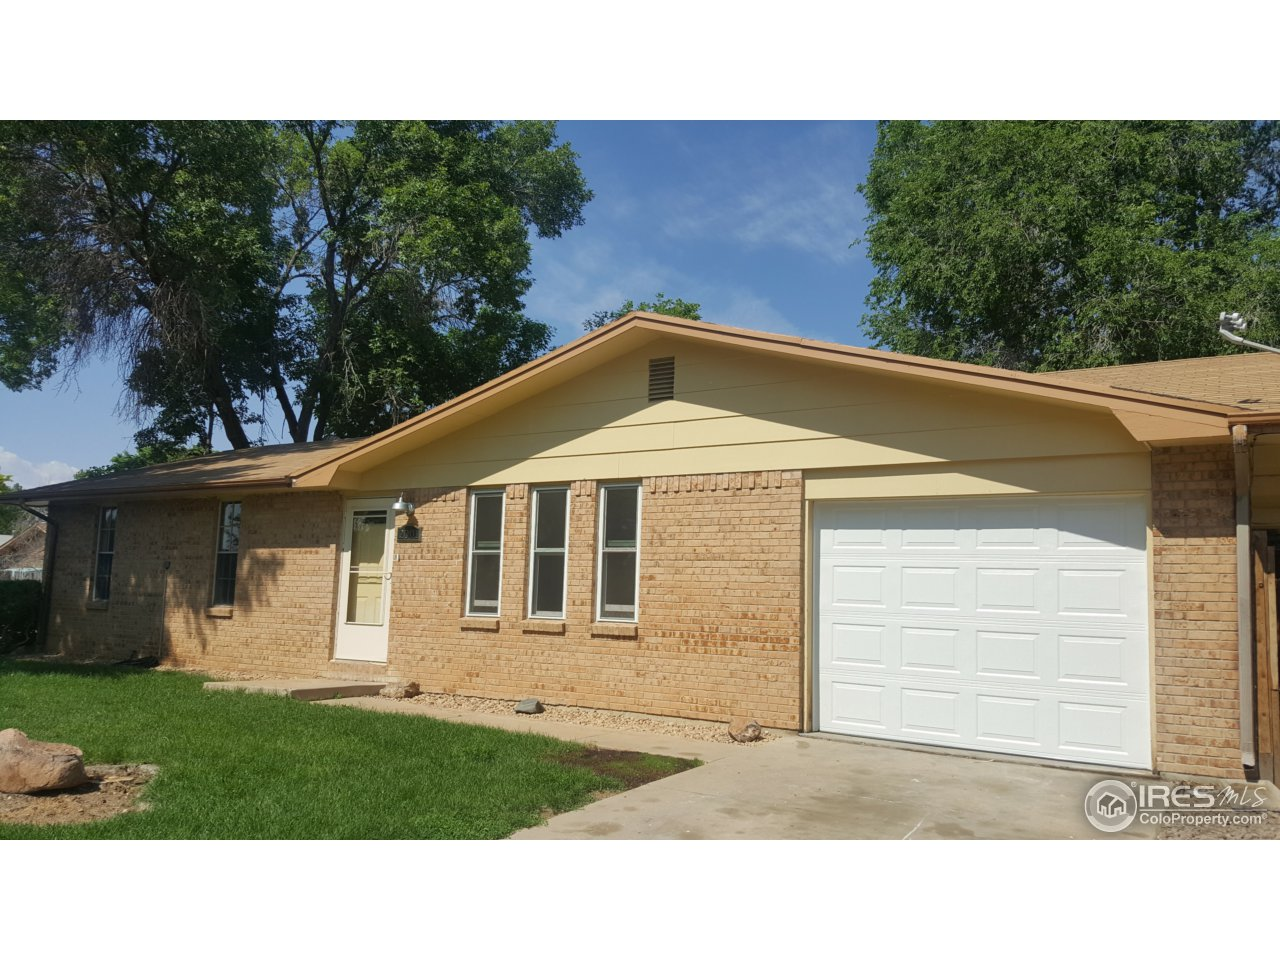 2001 Yeager Dr, Longmont CO 80501